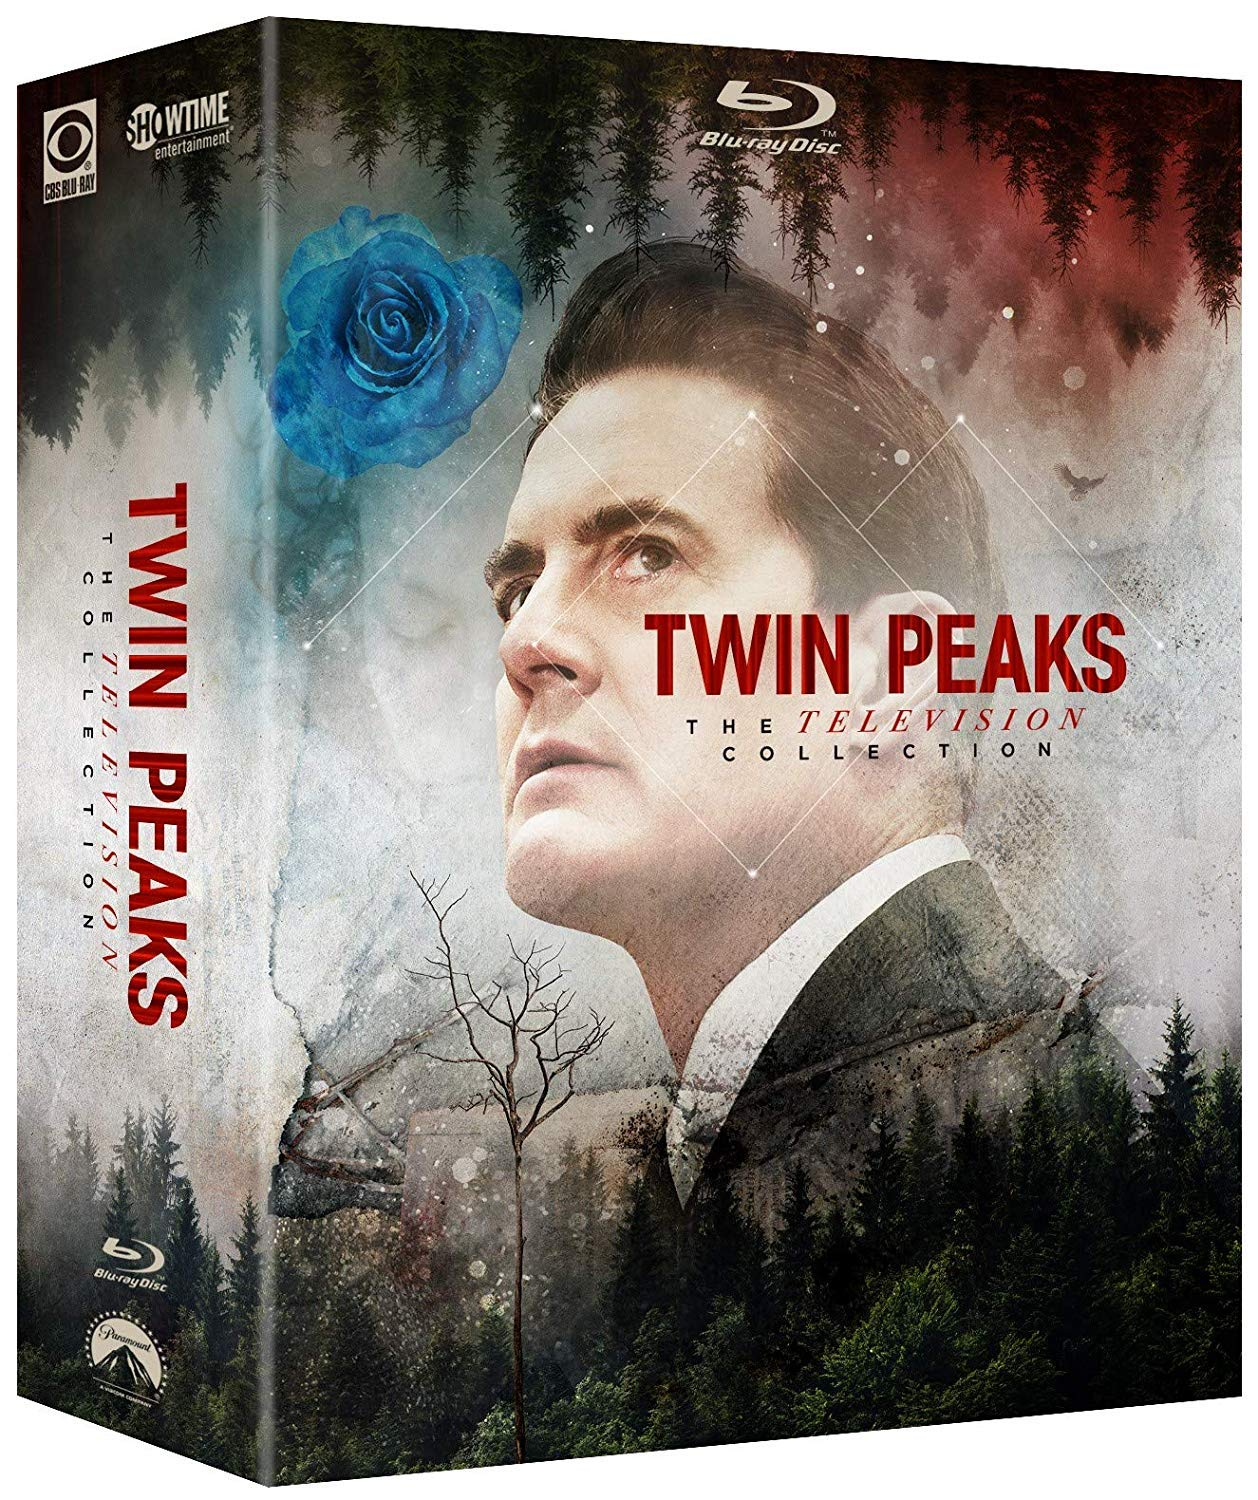 Save on Select titles during Twin Peaks Day